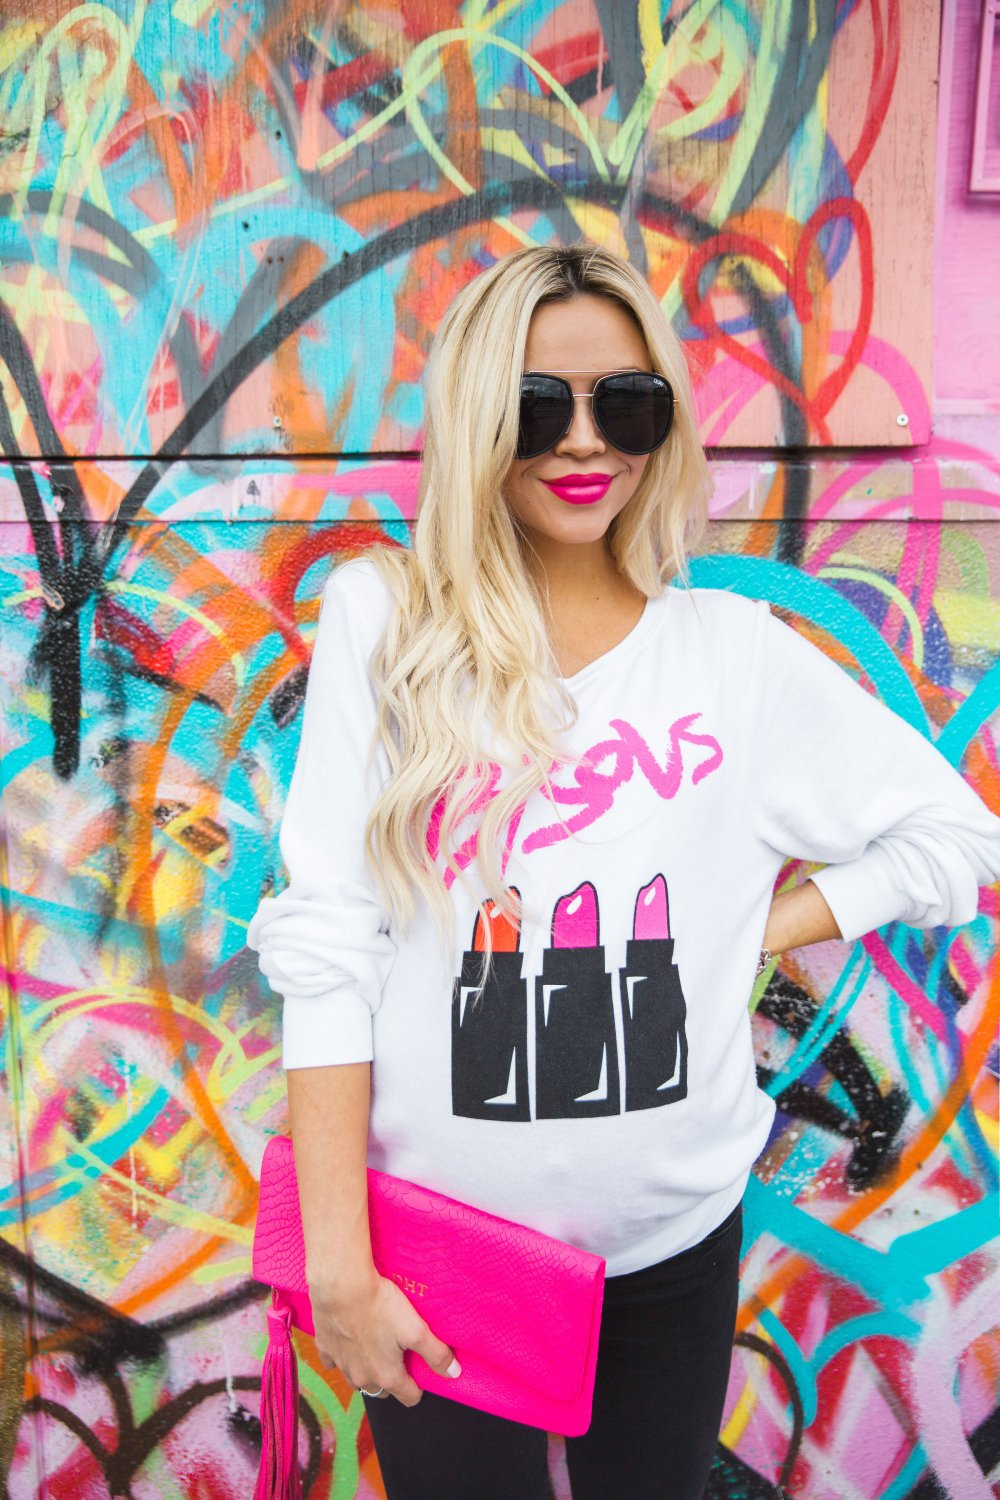 Sweatshirts just belong in maternity wardrobes! This one from Bison is super comfy, can be dressed up with heels, or down with sneakers! Loving the lipstick graphics!